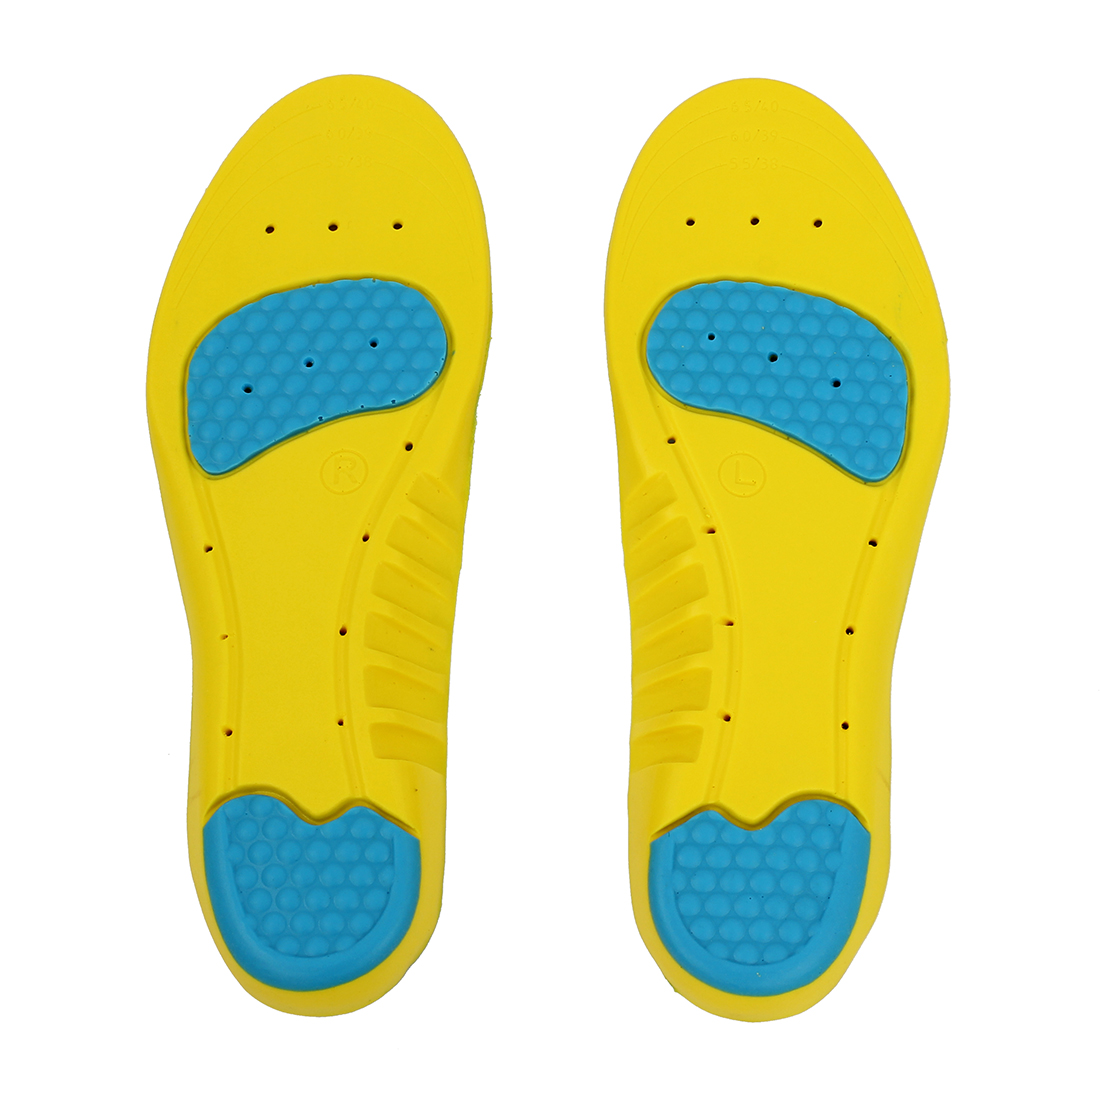 LGFM-Shoes Pads Memory Foam Sport Support Orthotic Insoles Arch